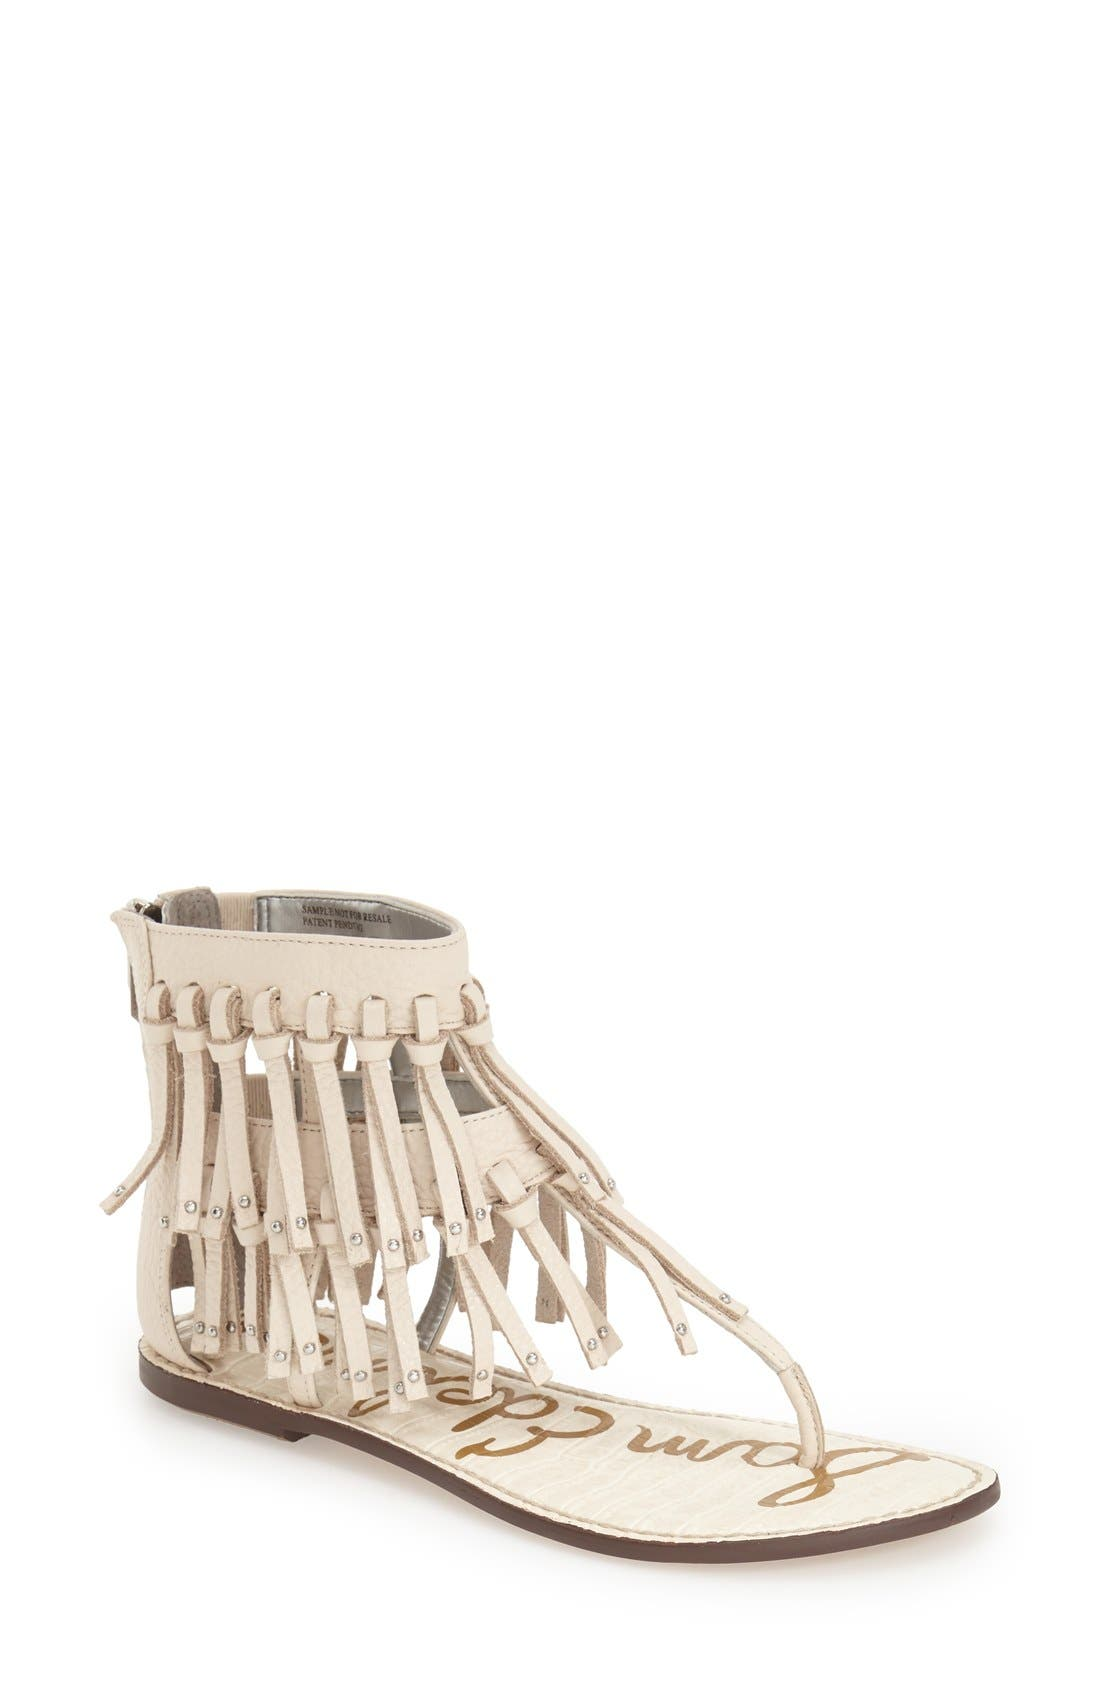 'Griffen' Fringe Sandal,                         Main,                         color, Modern Ivory Leather